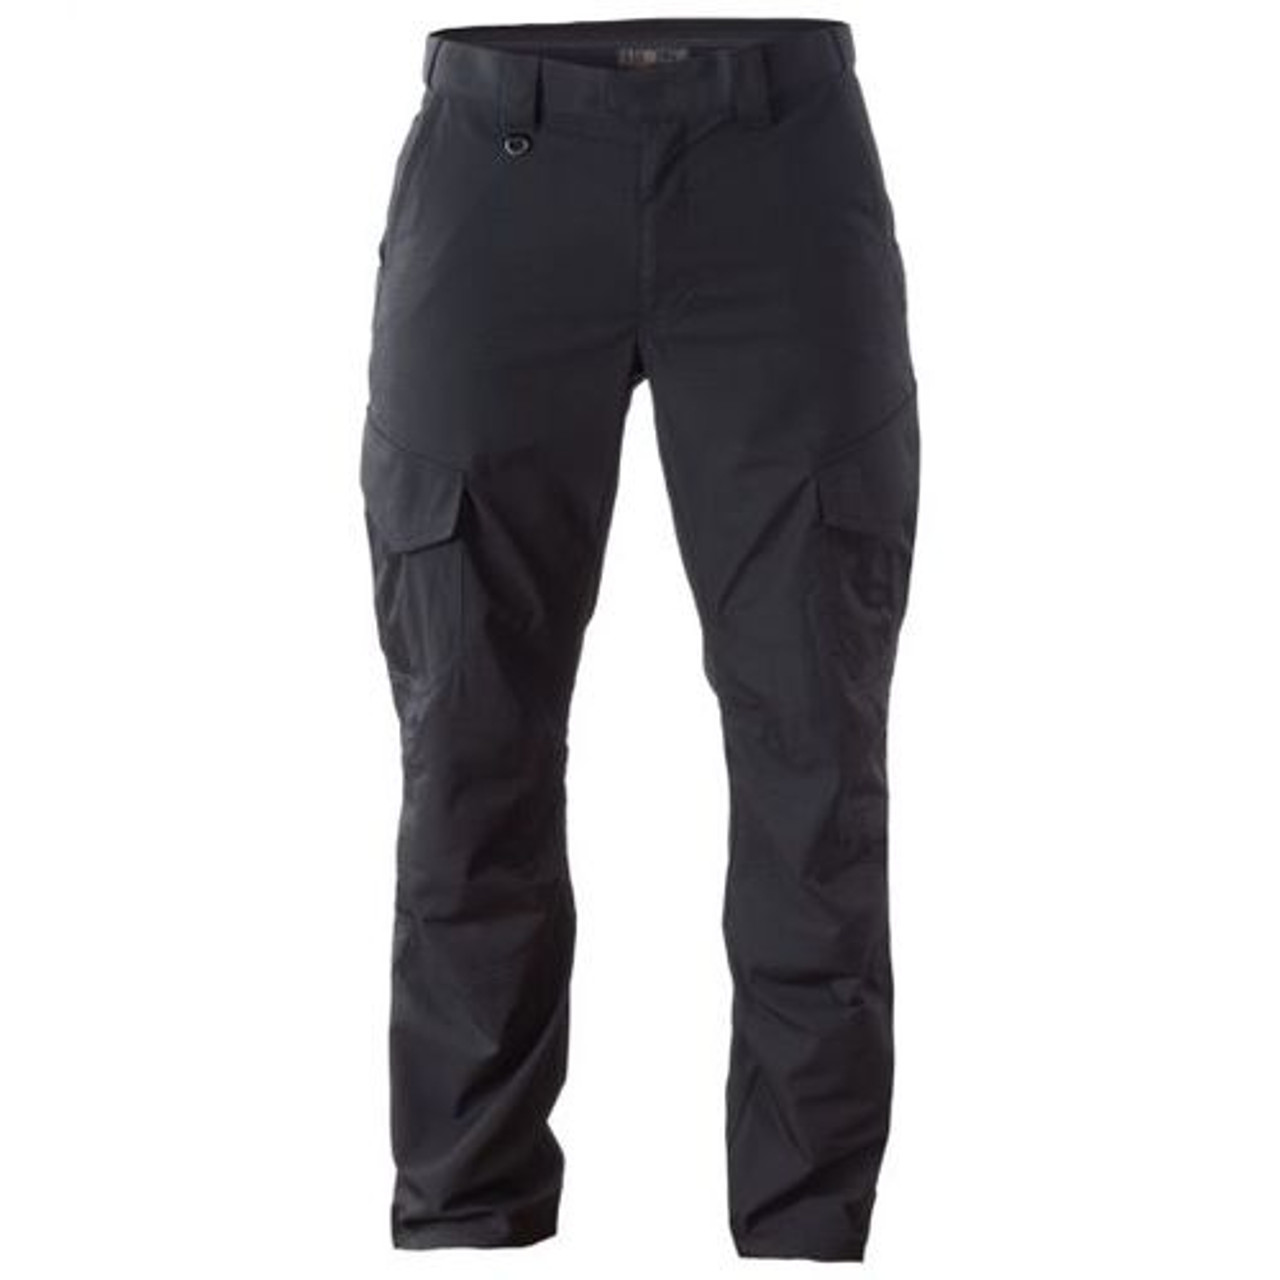 5.11 Tactical 74412 Stryke Motor Men's Uniform Cargo Pants, Relaxed Fit, Adjustable Waist, available in Black or Navy